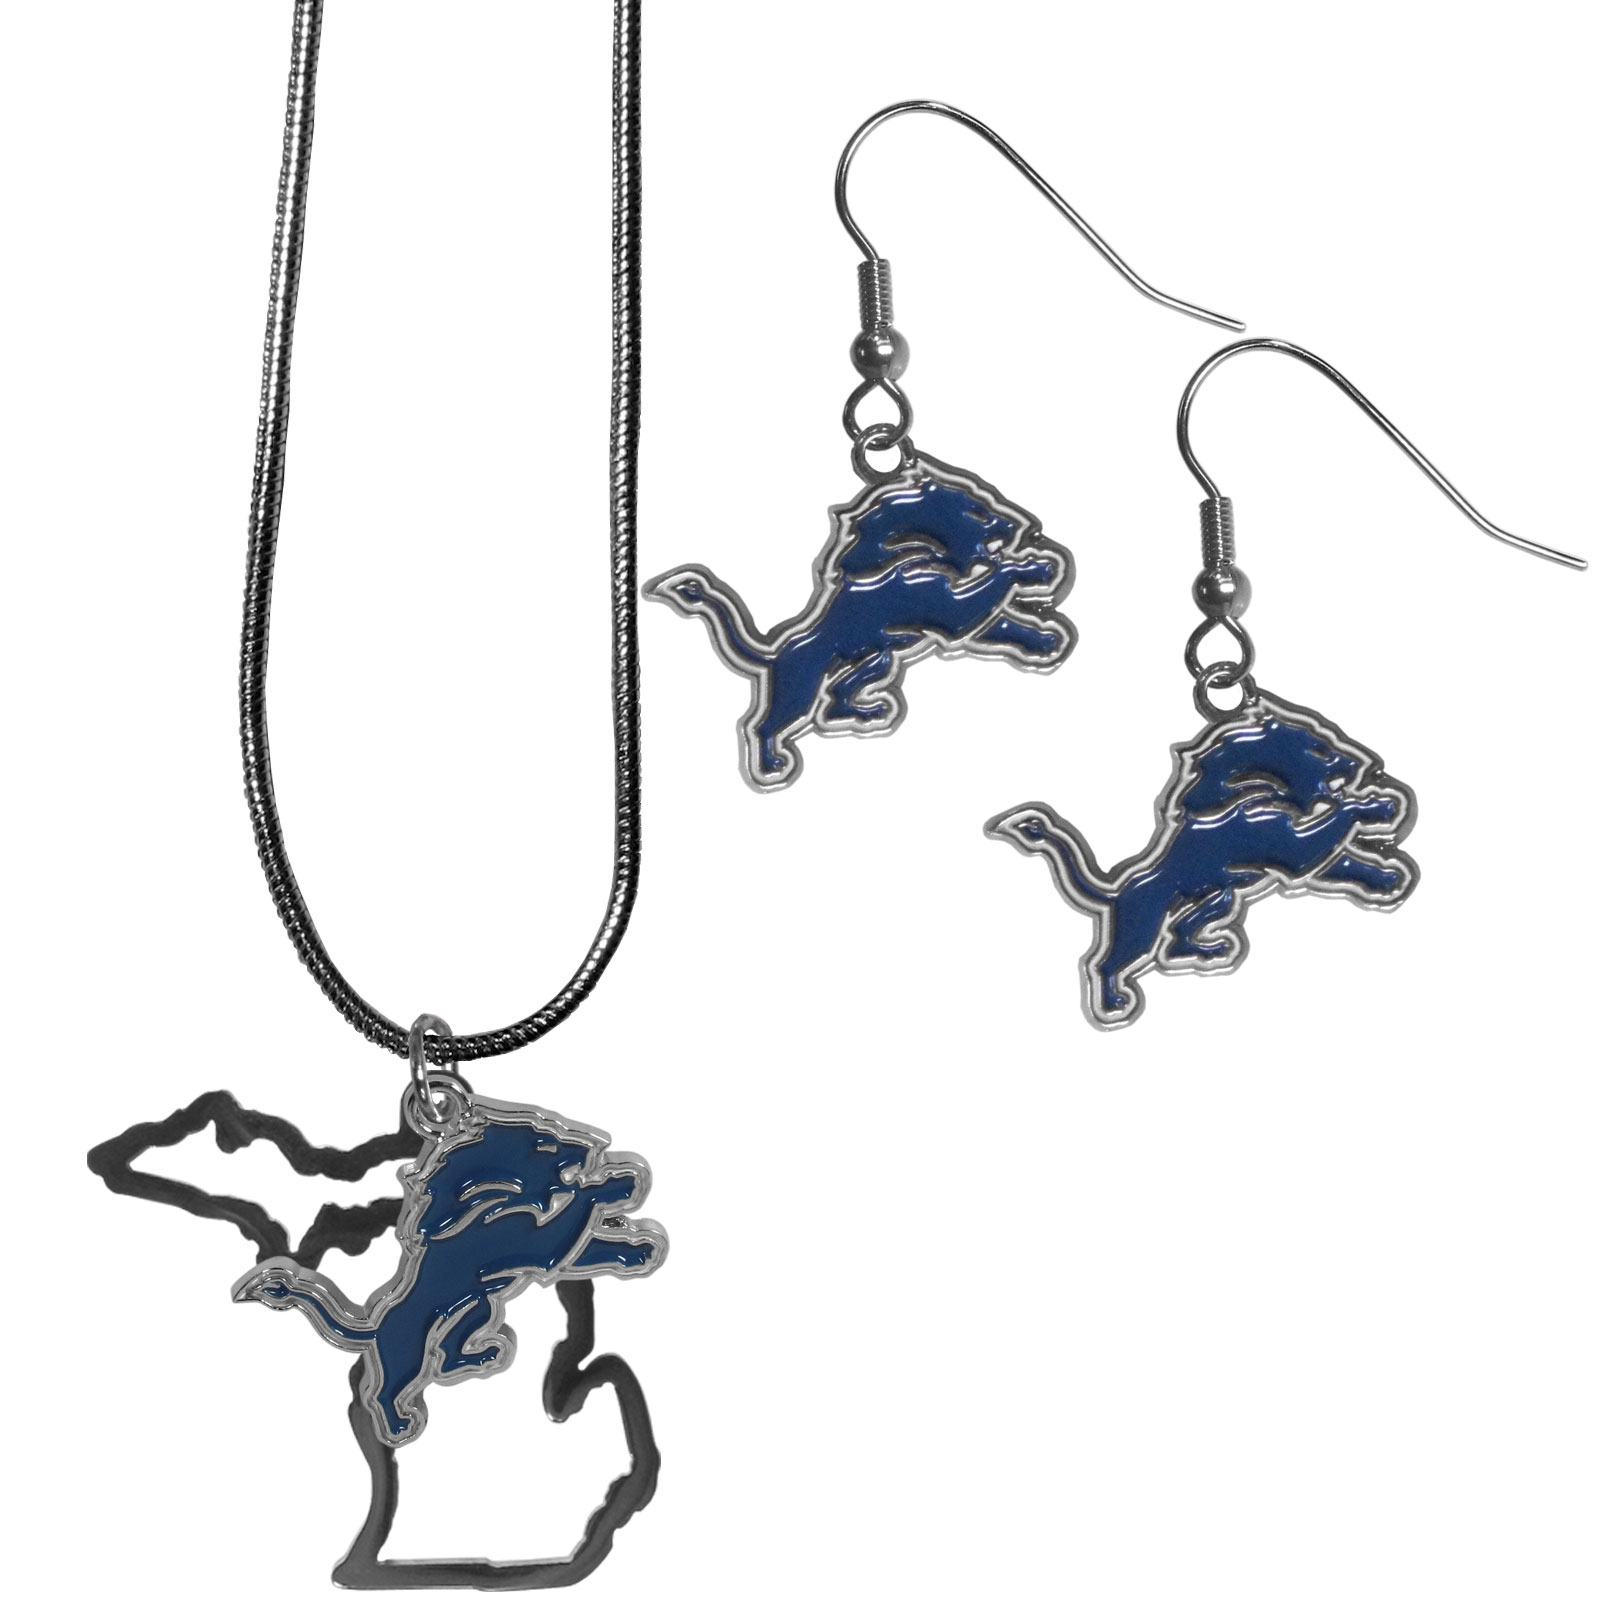 Detroit Lions Dangle Earrings and State Necklace Set - Get in on the trend! State themes are a trend that just keeps getting more popular and this jewelry set takes the state style and give it a sporty twist with a Detroit Lions necklace that features an Arizona state outline charm paired with a beautiful team charm and matching team charm dangle earrings. The earrings feature hypoallergenic fishhook posts that are nickel free.